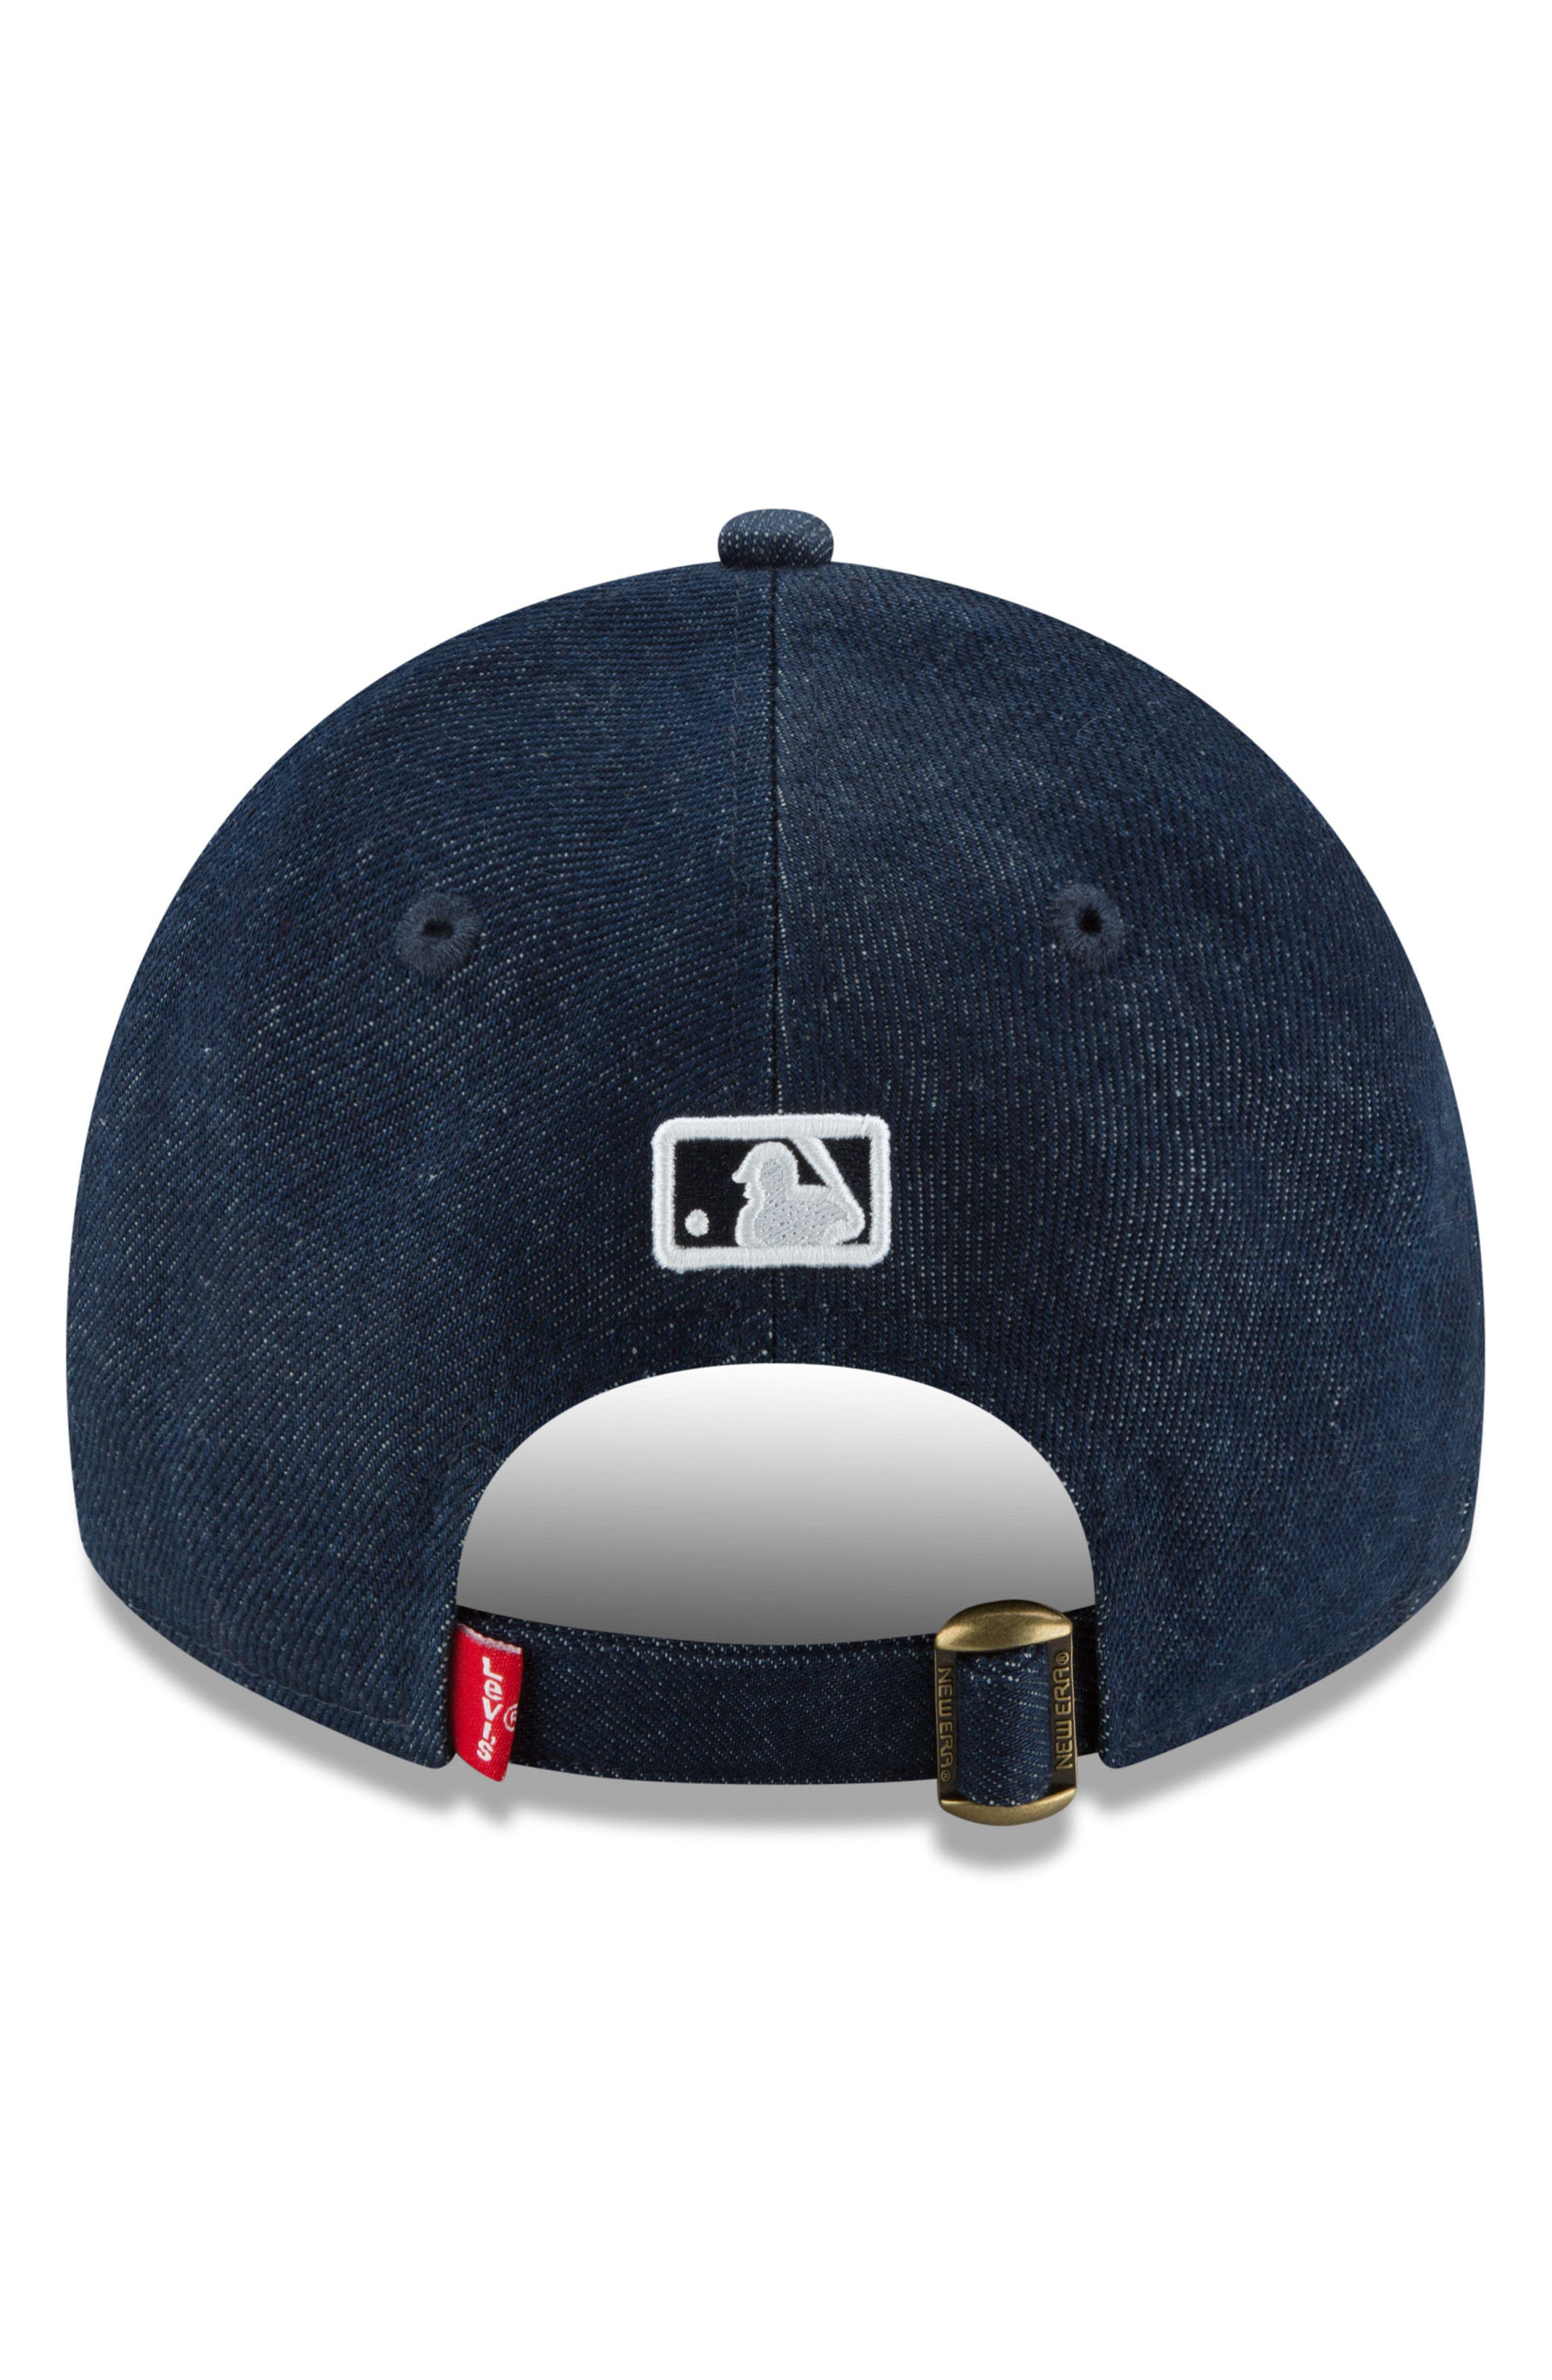 x Levi's<sup>®</sup> MLB Micro Batterman Baseball Cap,                             Alternate thumbnail 4, color,                             BLACK